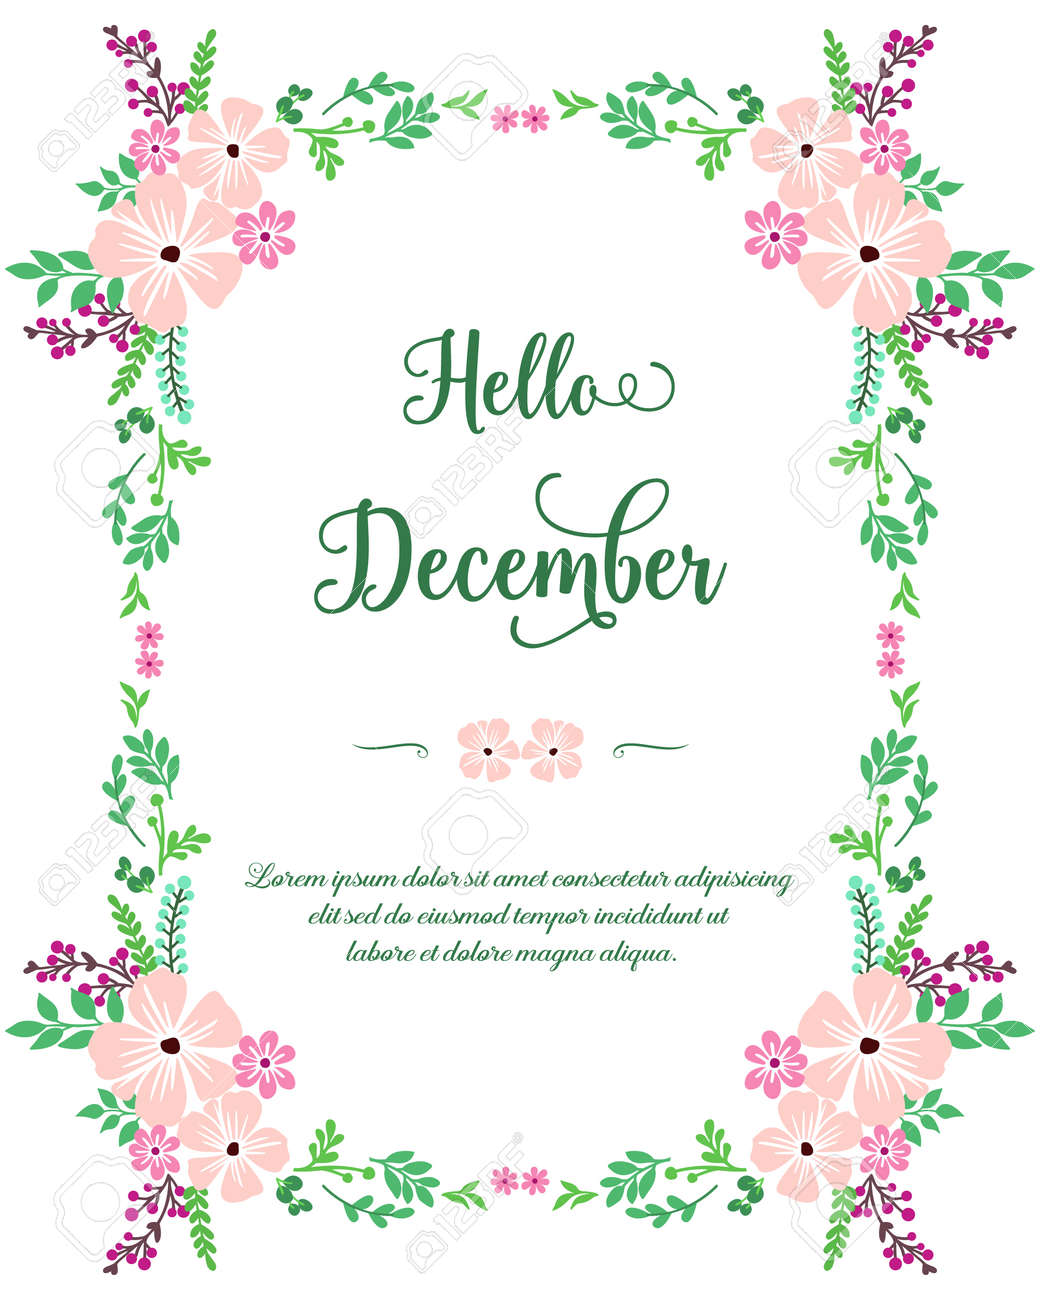 Hello December lettering with floral frame - 147137416